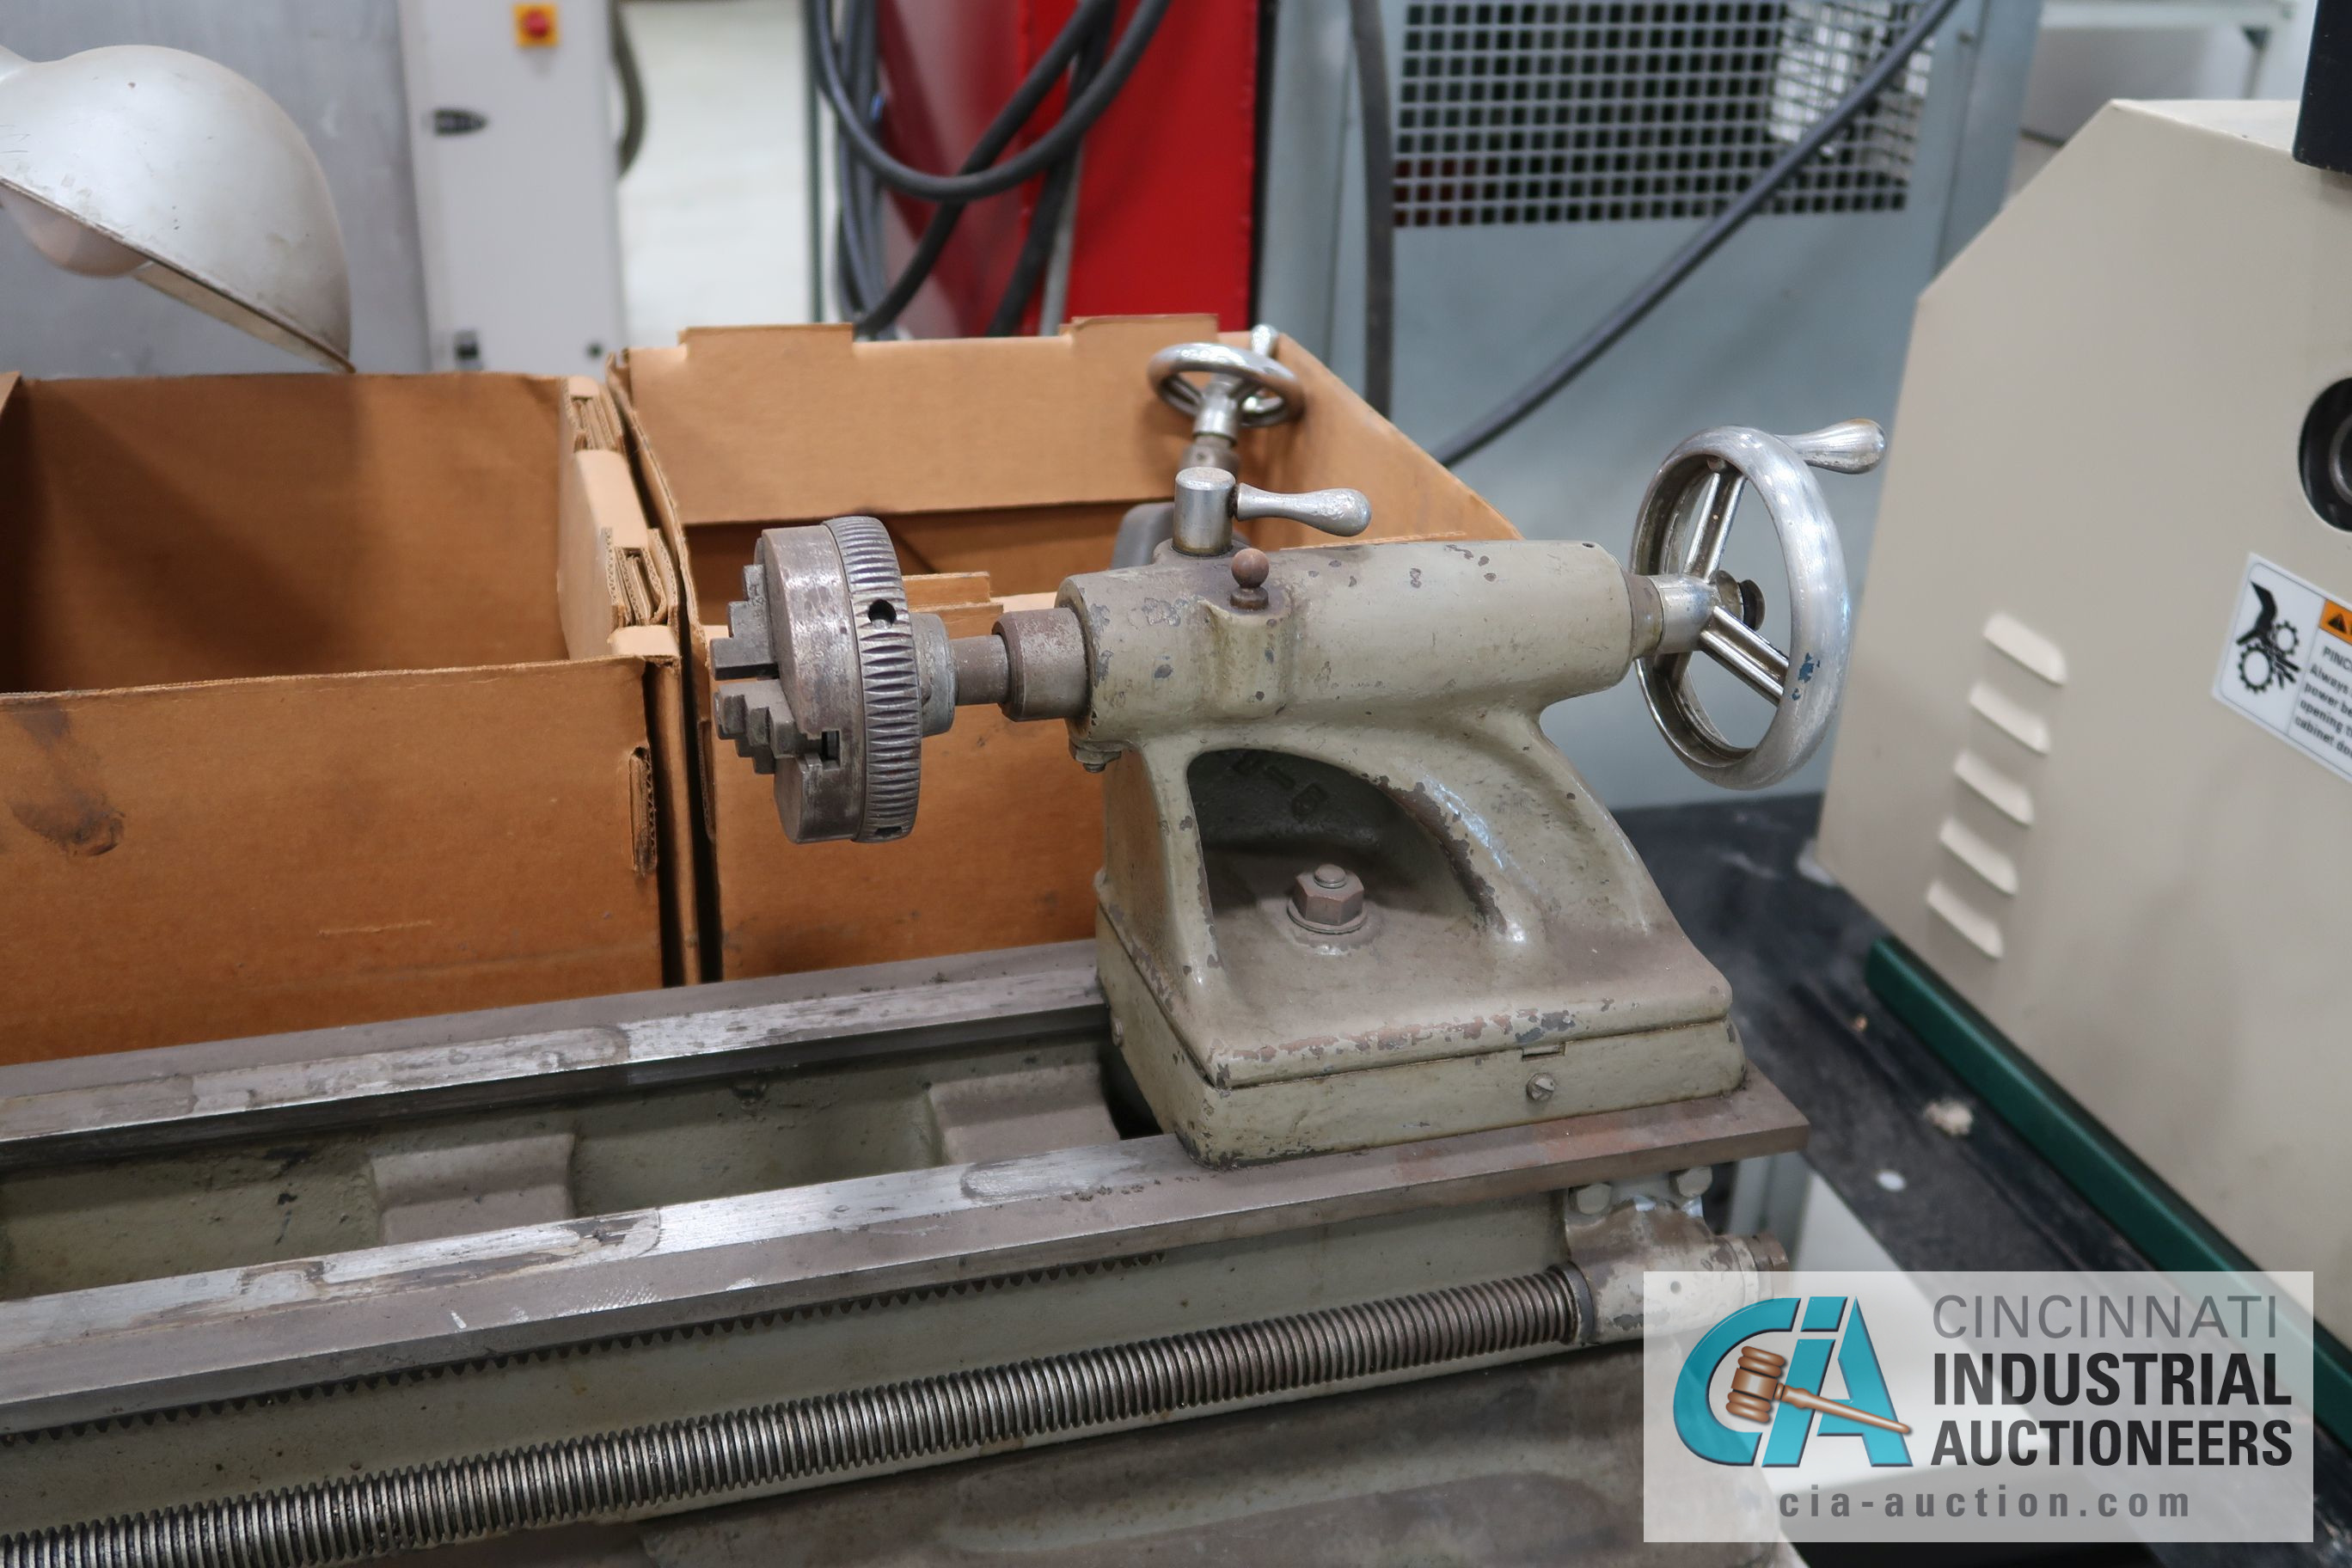 ATLAS MODEL TH48 BENCH TOP LATHE; S/N 058298, WITH WORK BENCH AND MACHINE ACCESSORIES, 110 VOLT - Image 4 of 8